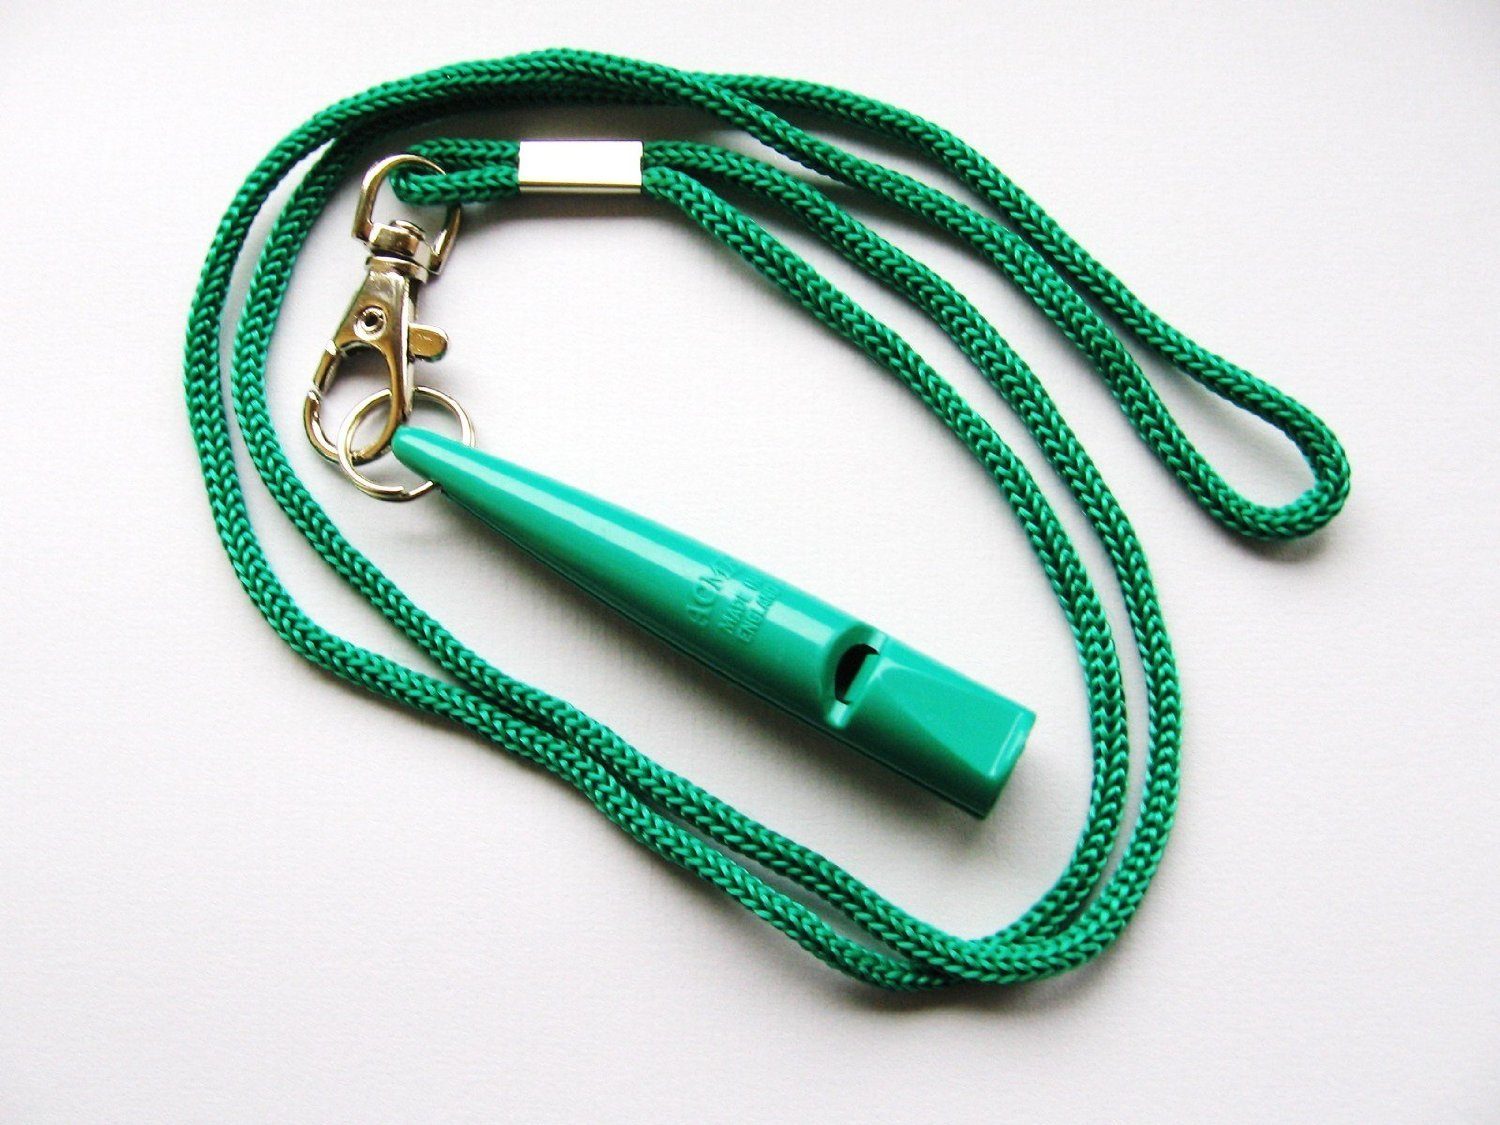 Acme 211.5 Dog Whistle Green with lanyard